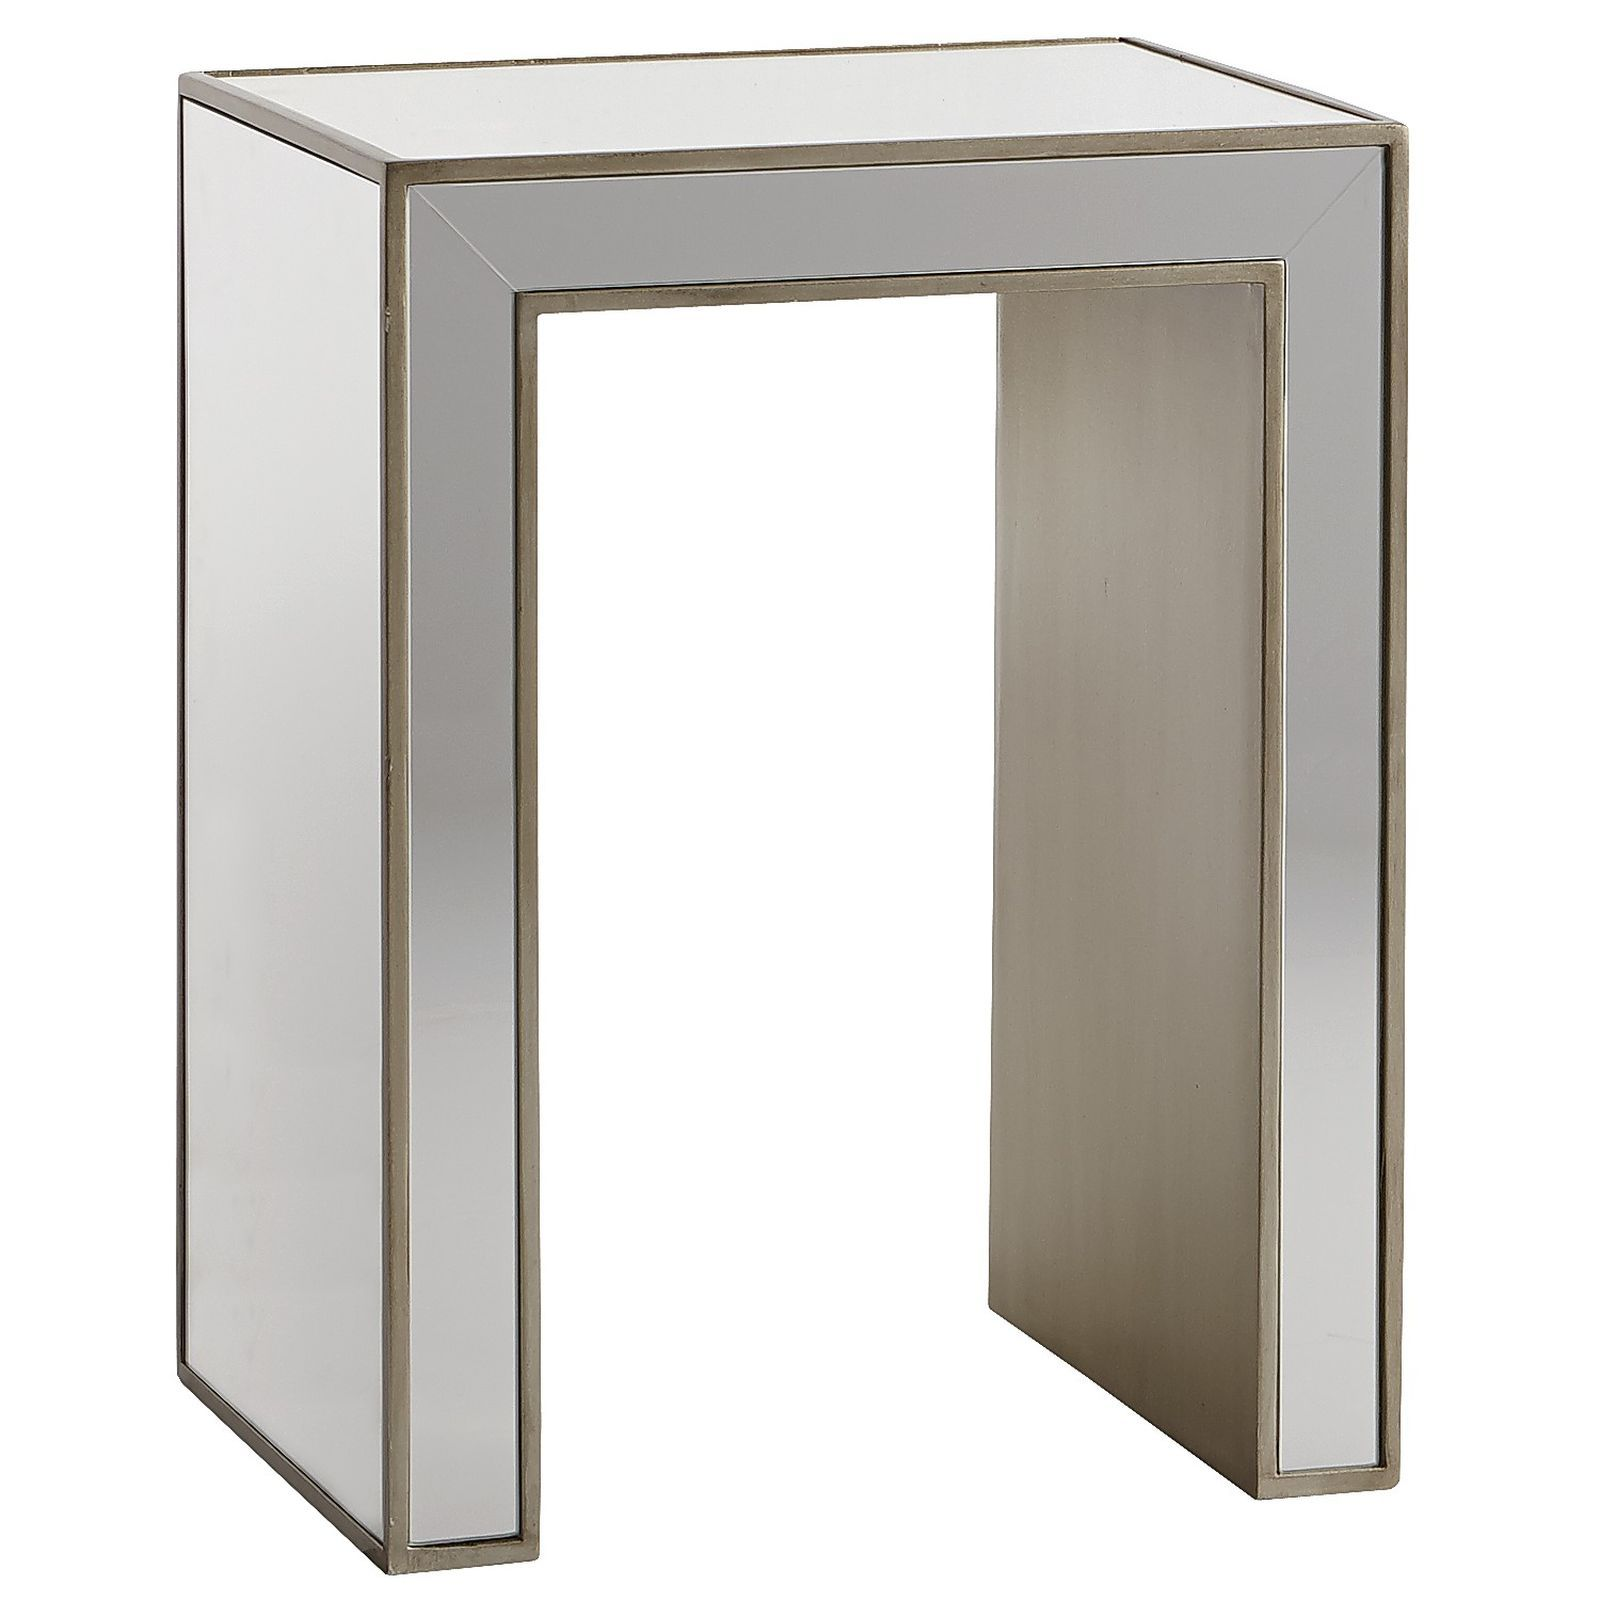 Alexa Mirrored End Table   Pier 1 Imports